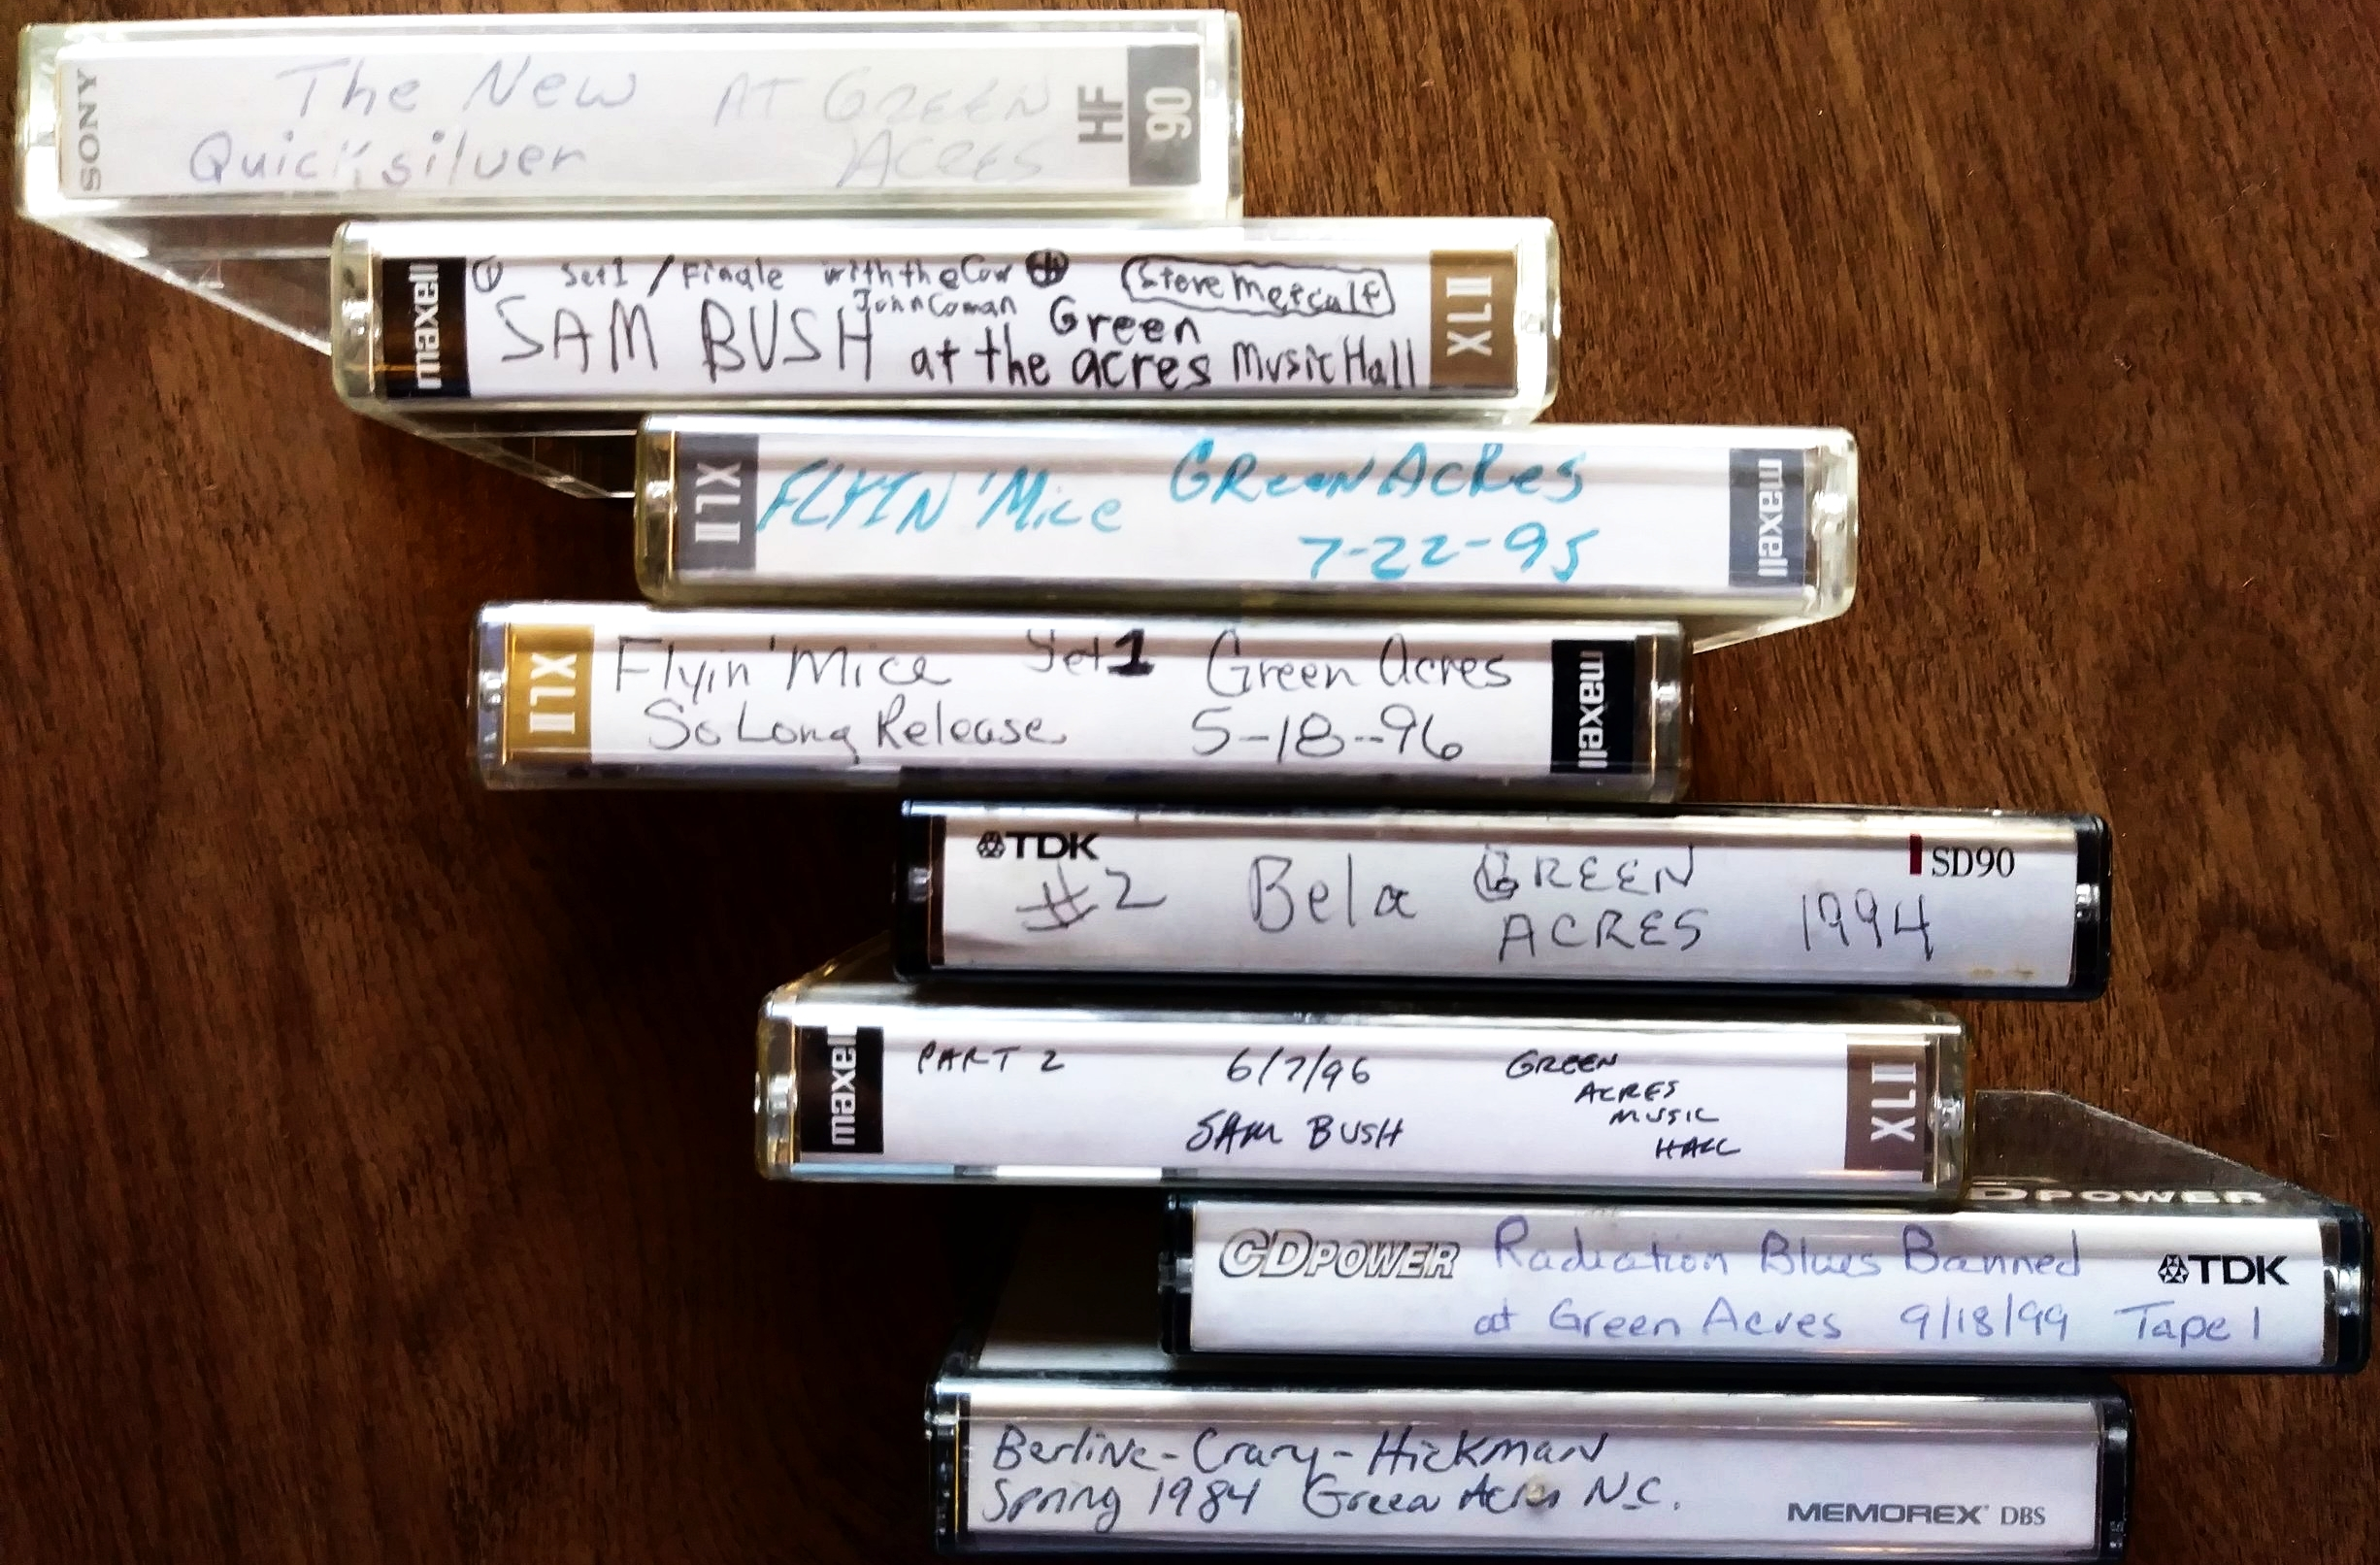 Cassettes of Green Acres Music Hall shows dating back to 1984